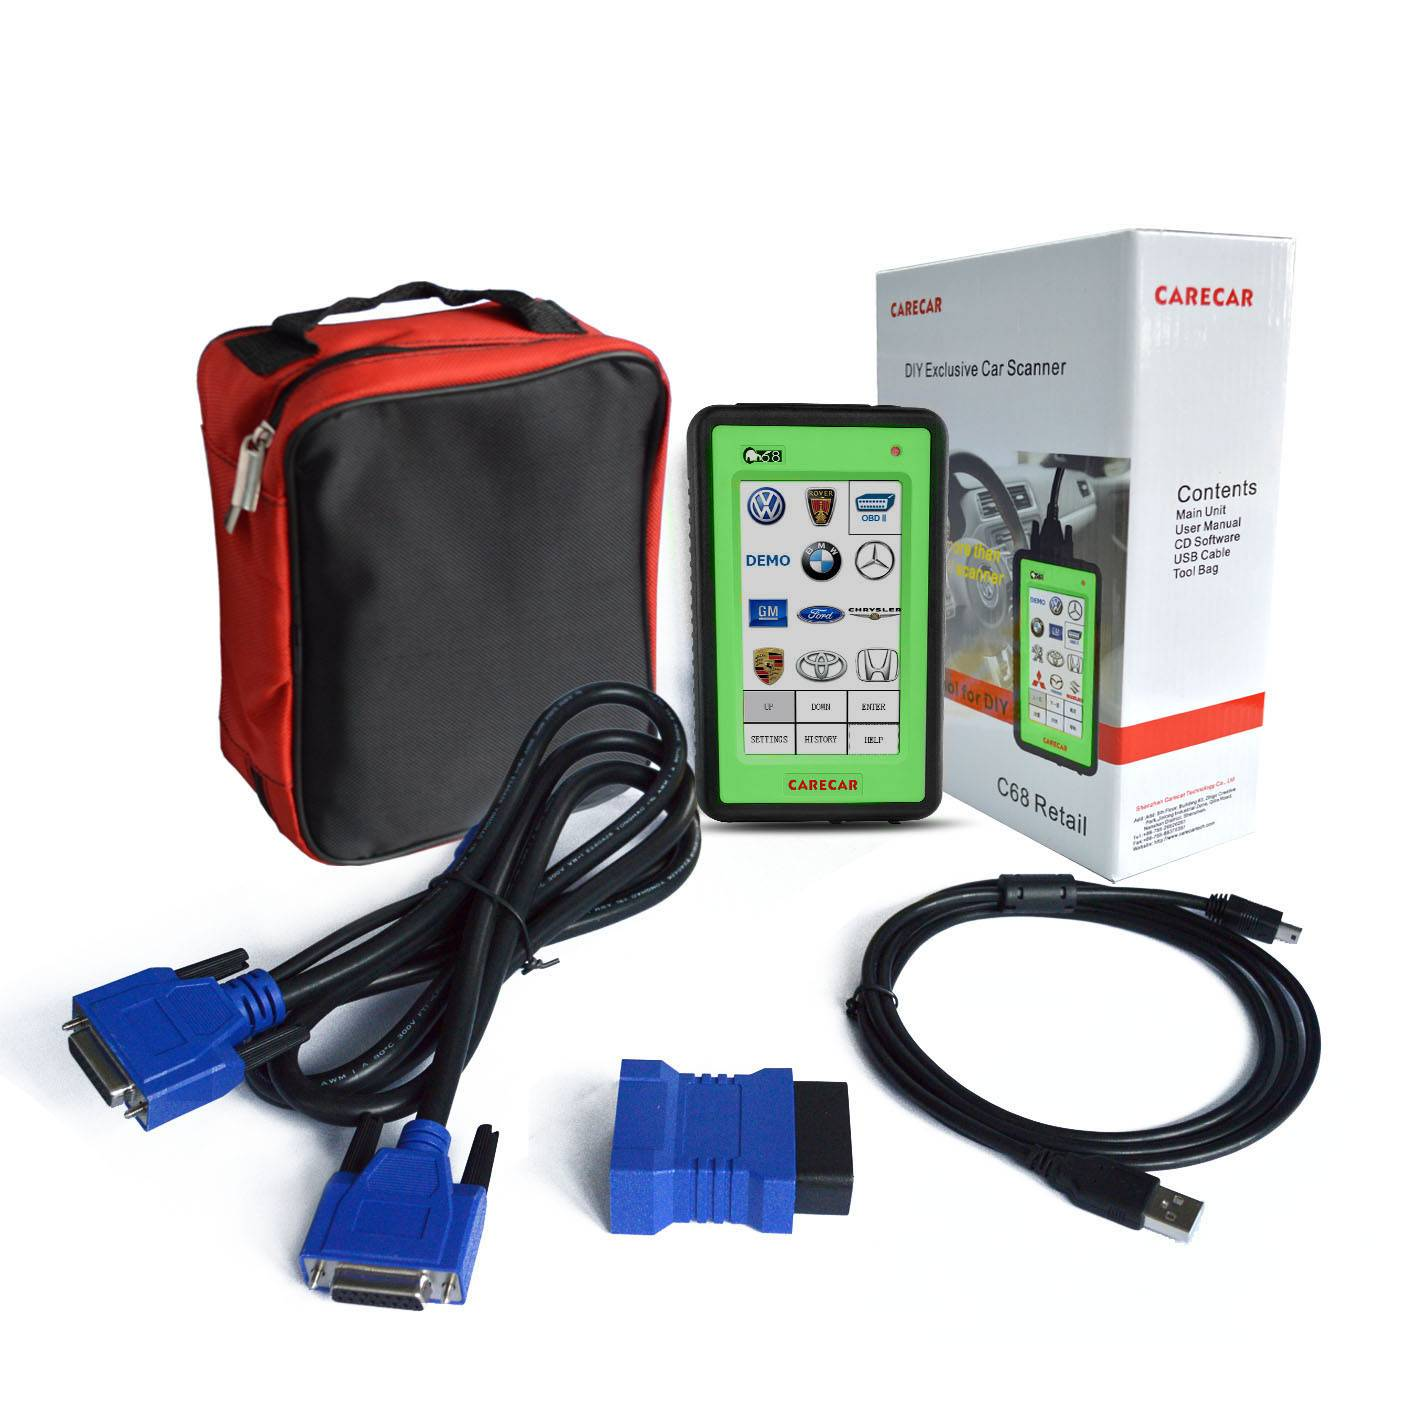 CARECAR Auto Hand Held Diagnostic Scanner C68 Retail